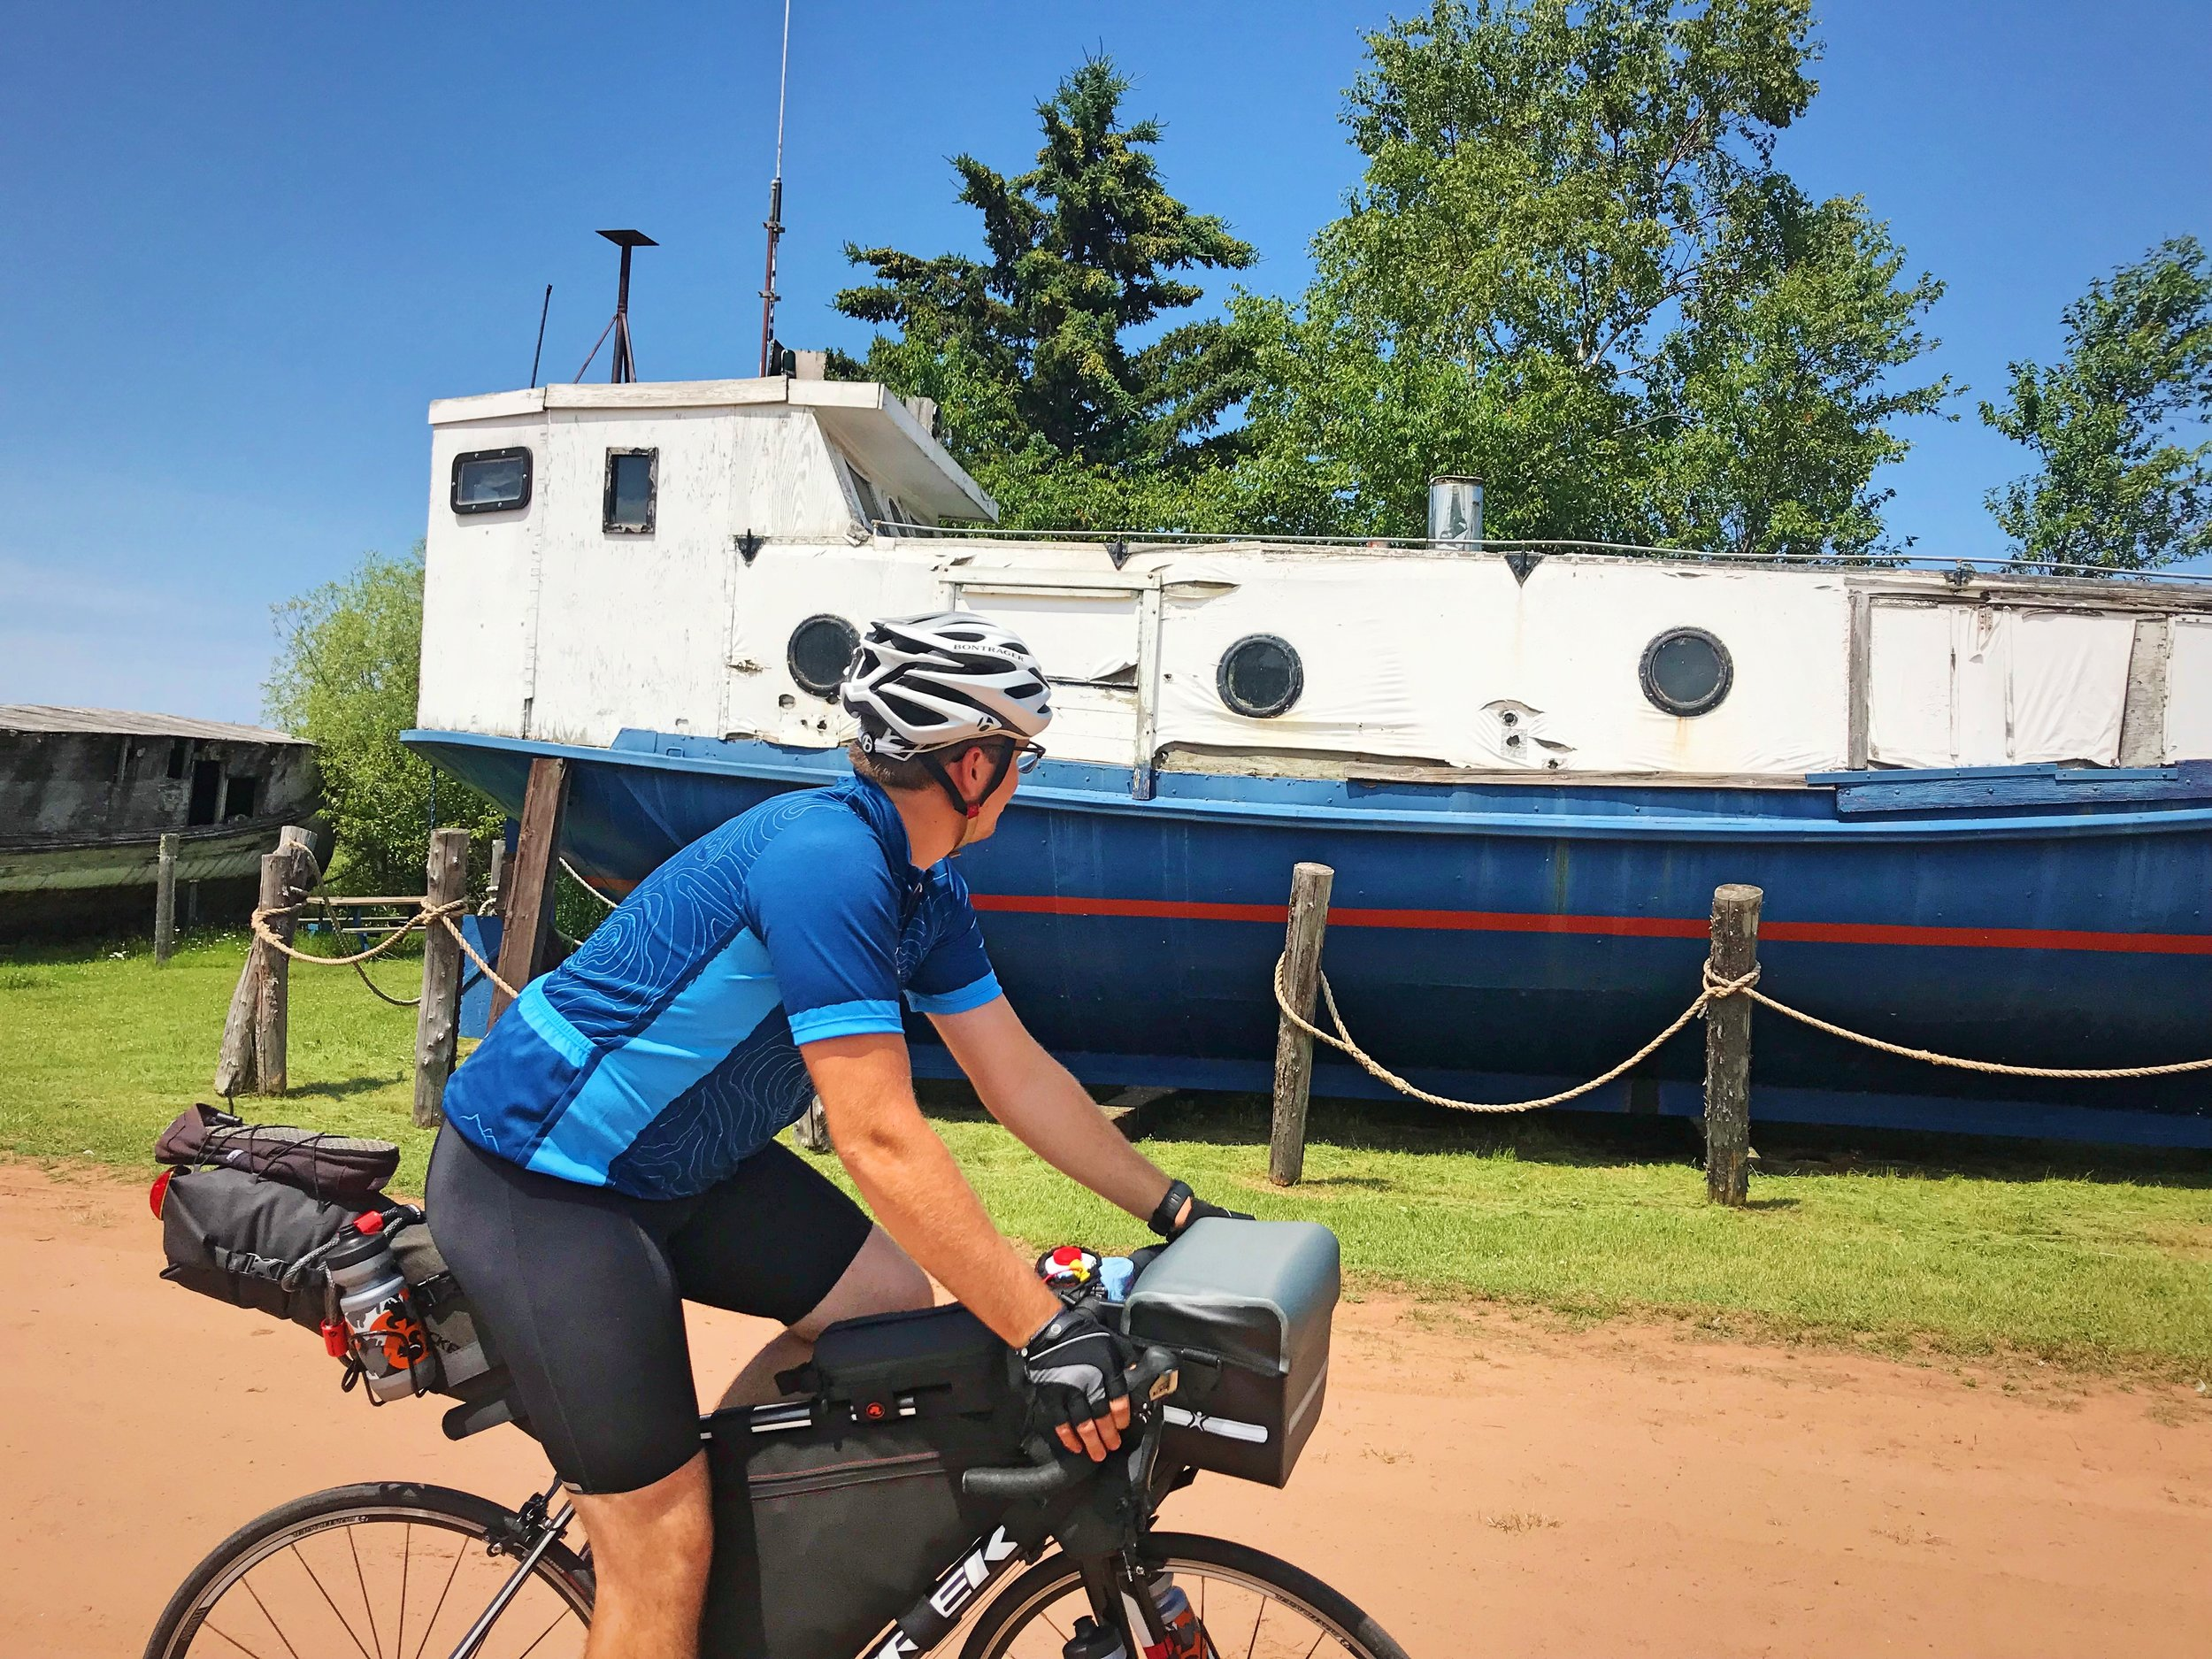 Ian bikes by his boat doppleganger near Corny Beach on our Lake Superior bike tour.